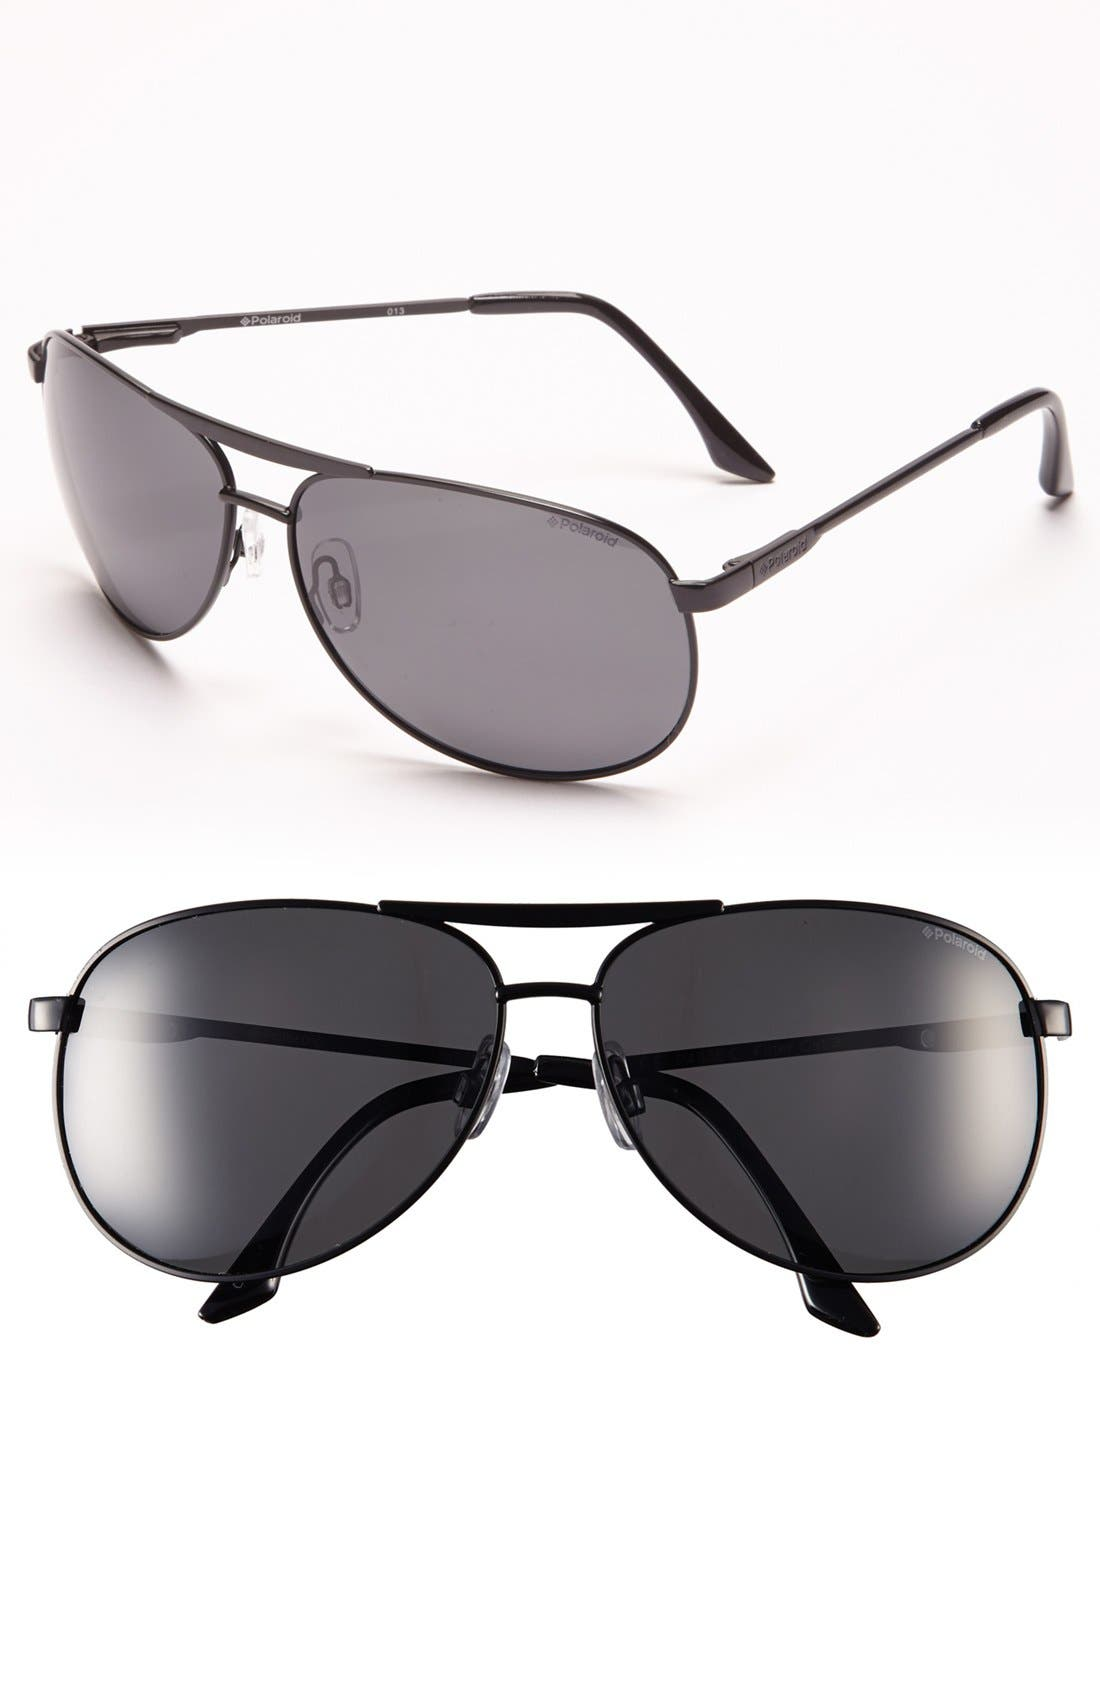 Alternate Image 1 Selected - Polaroid Eyewear 68mm Polarized Metal Aviator Sunglasses